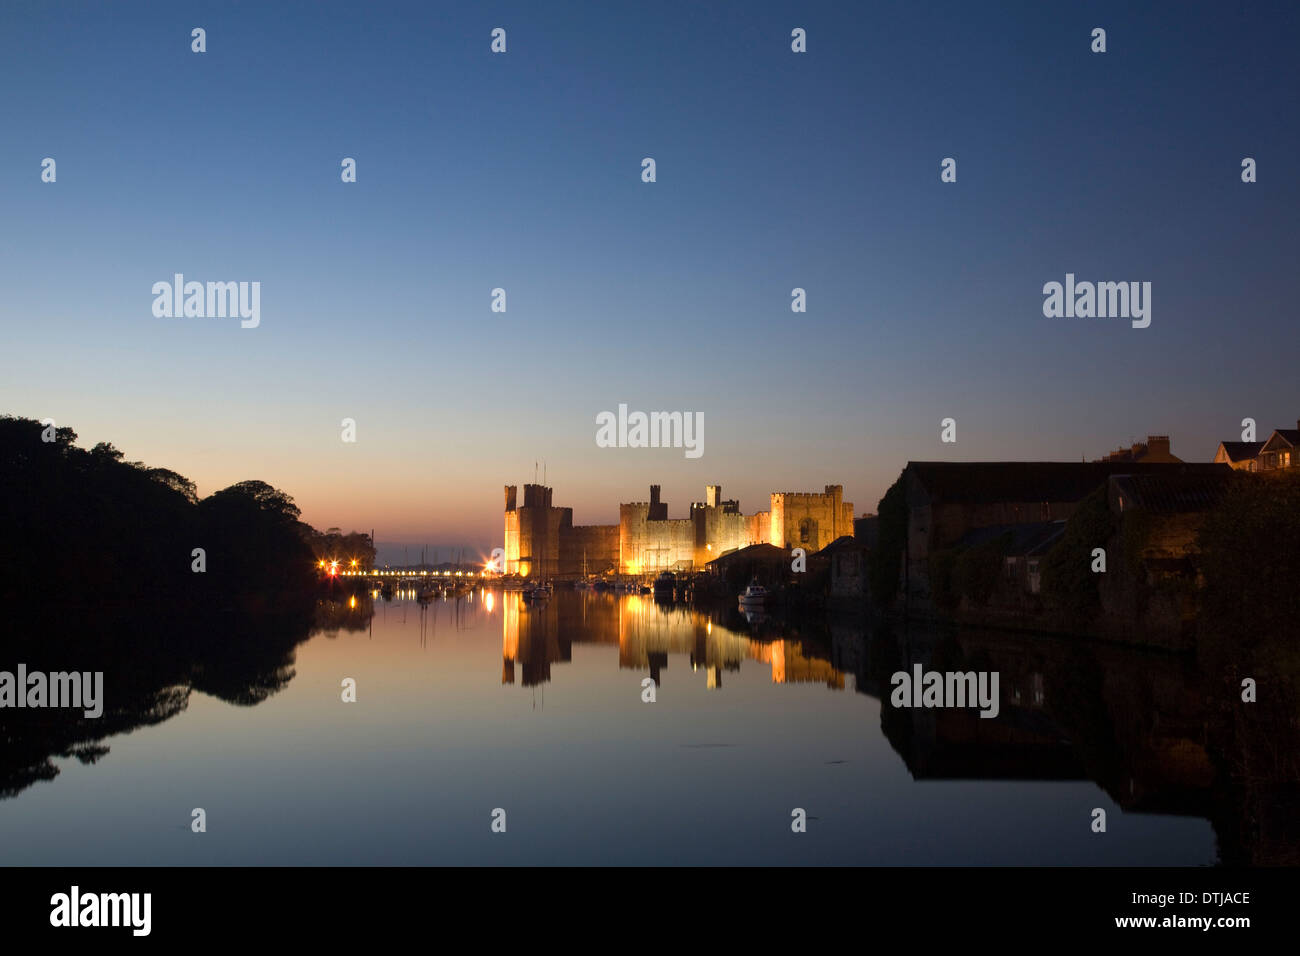 NIGHTSCAPE OF FLOODLIT BANGOR CASTLE - Stock Image